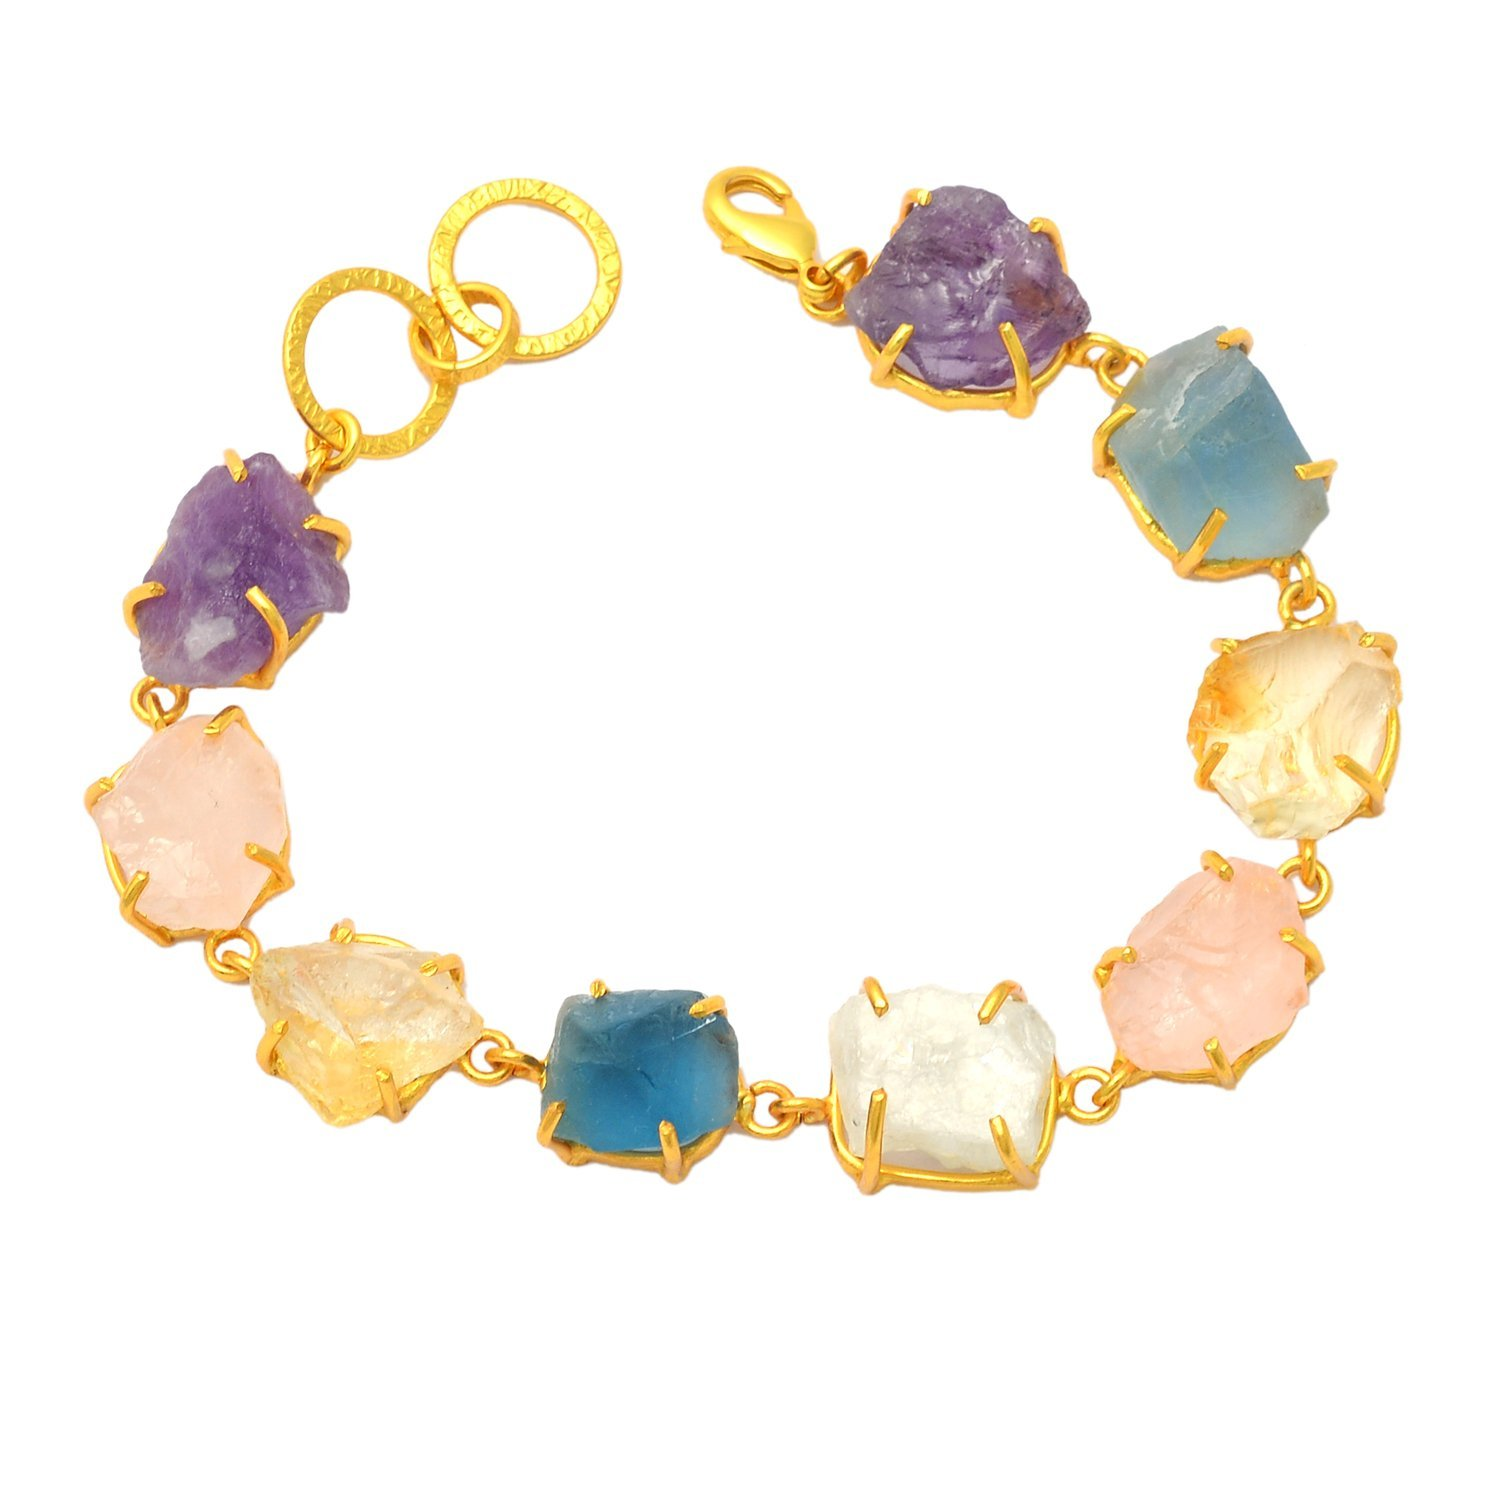 eurasia Handmade Rose Quartz Amethyst Moonstone Rough Gemstone Gold Plated Bracelet